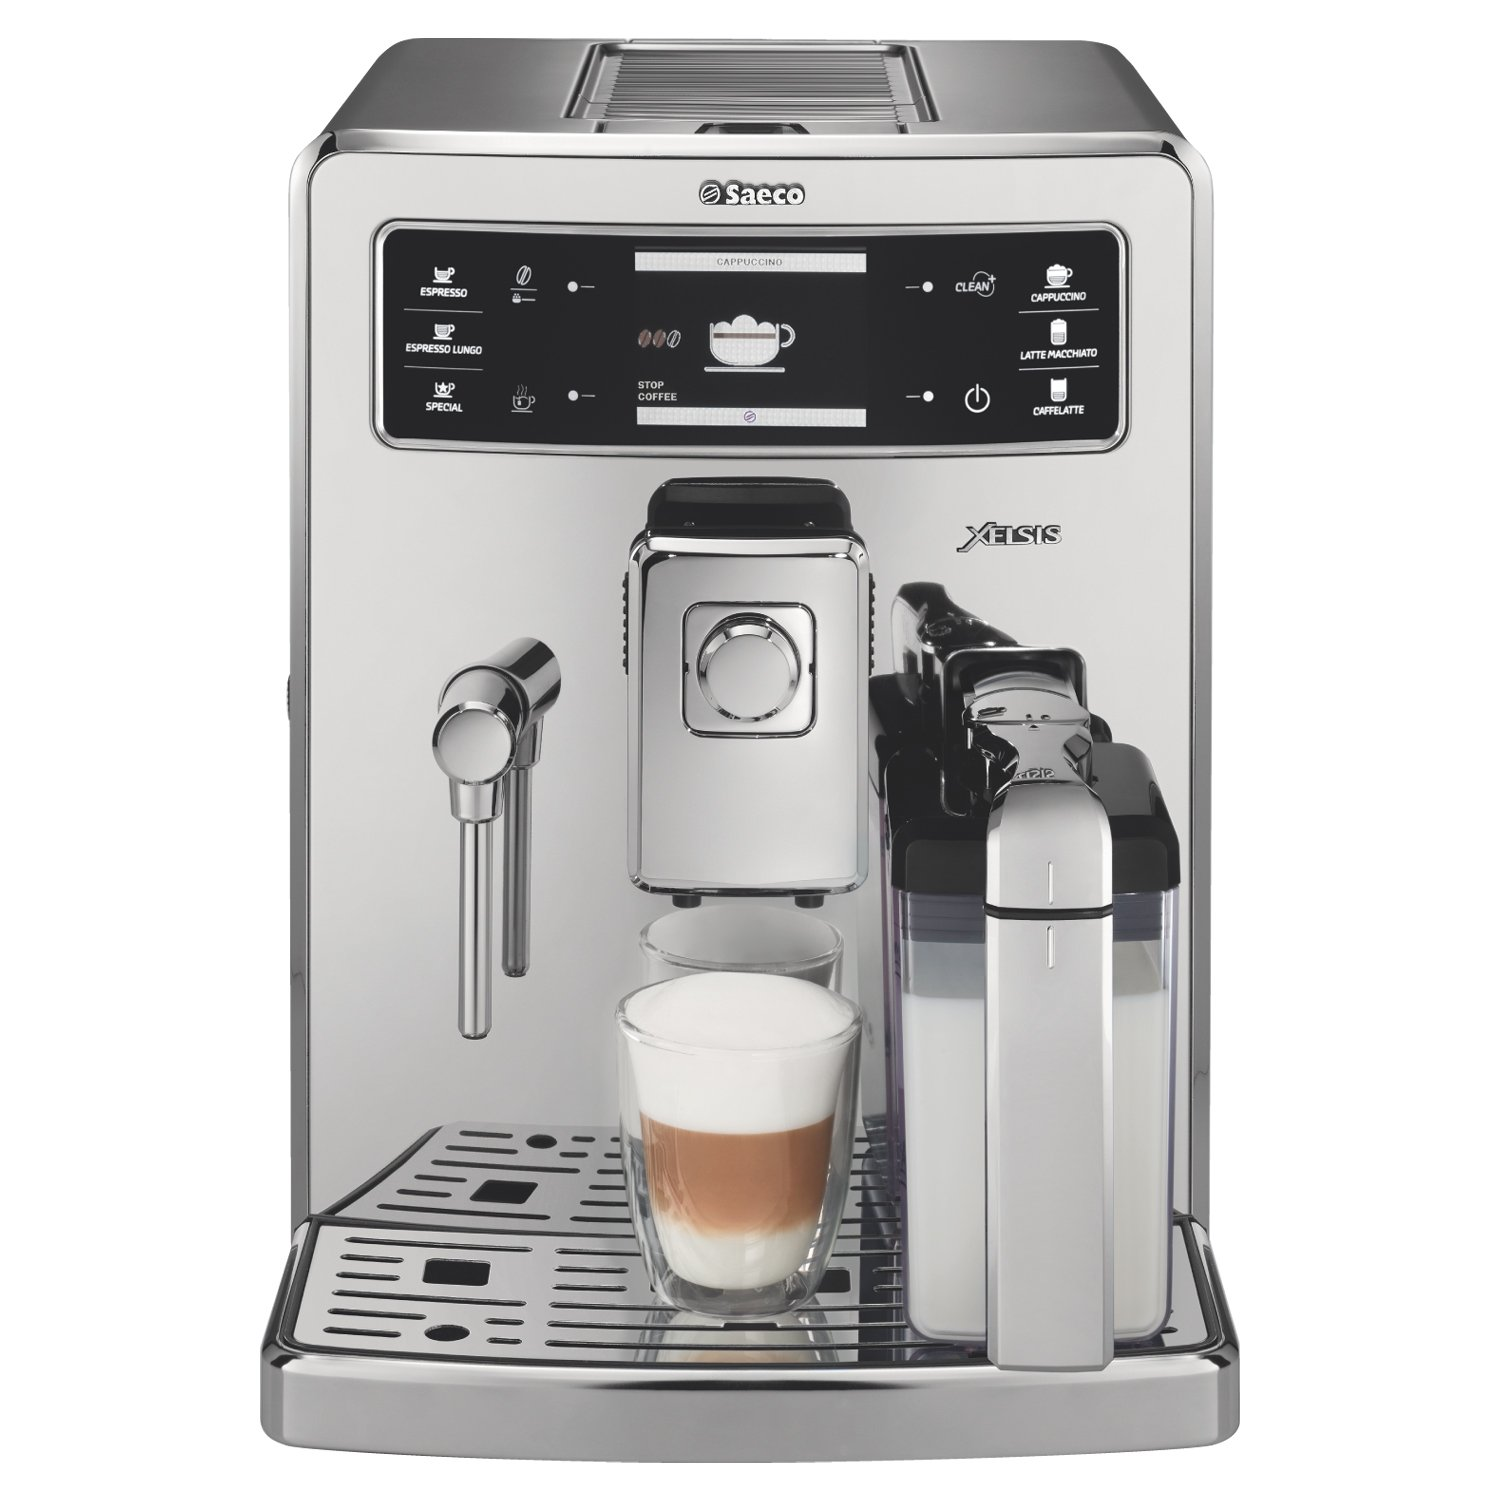 Philips Saeco Xelsis Digiital ID Espresso Machine Front View